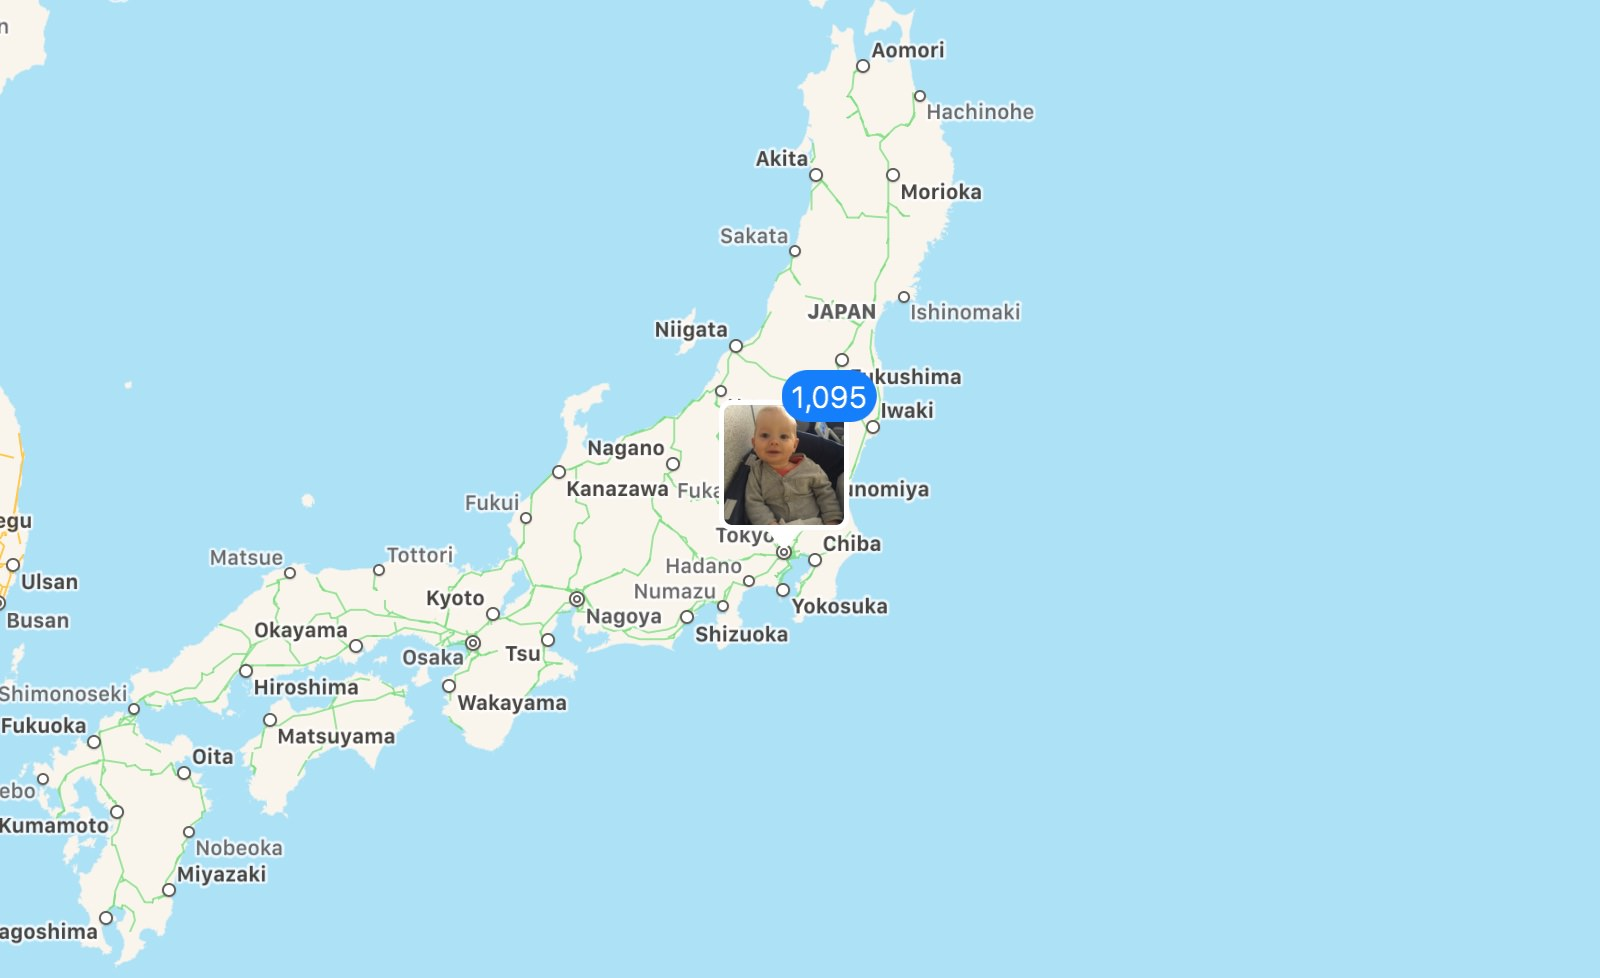 Photos on the Places map of Japan